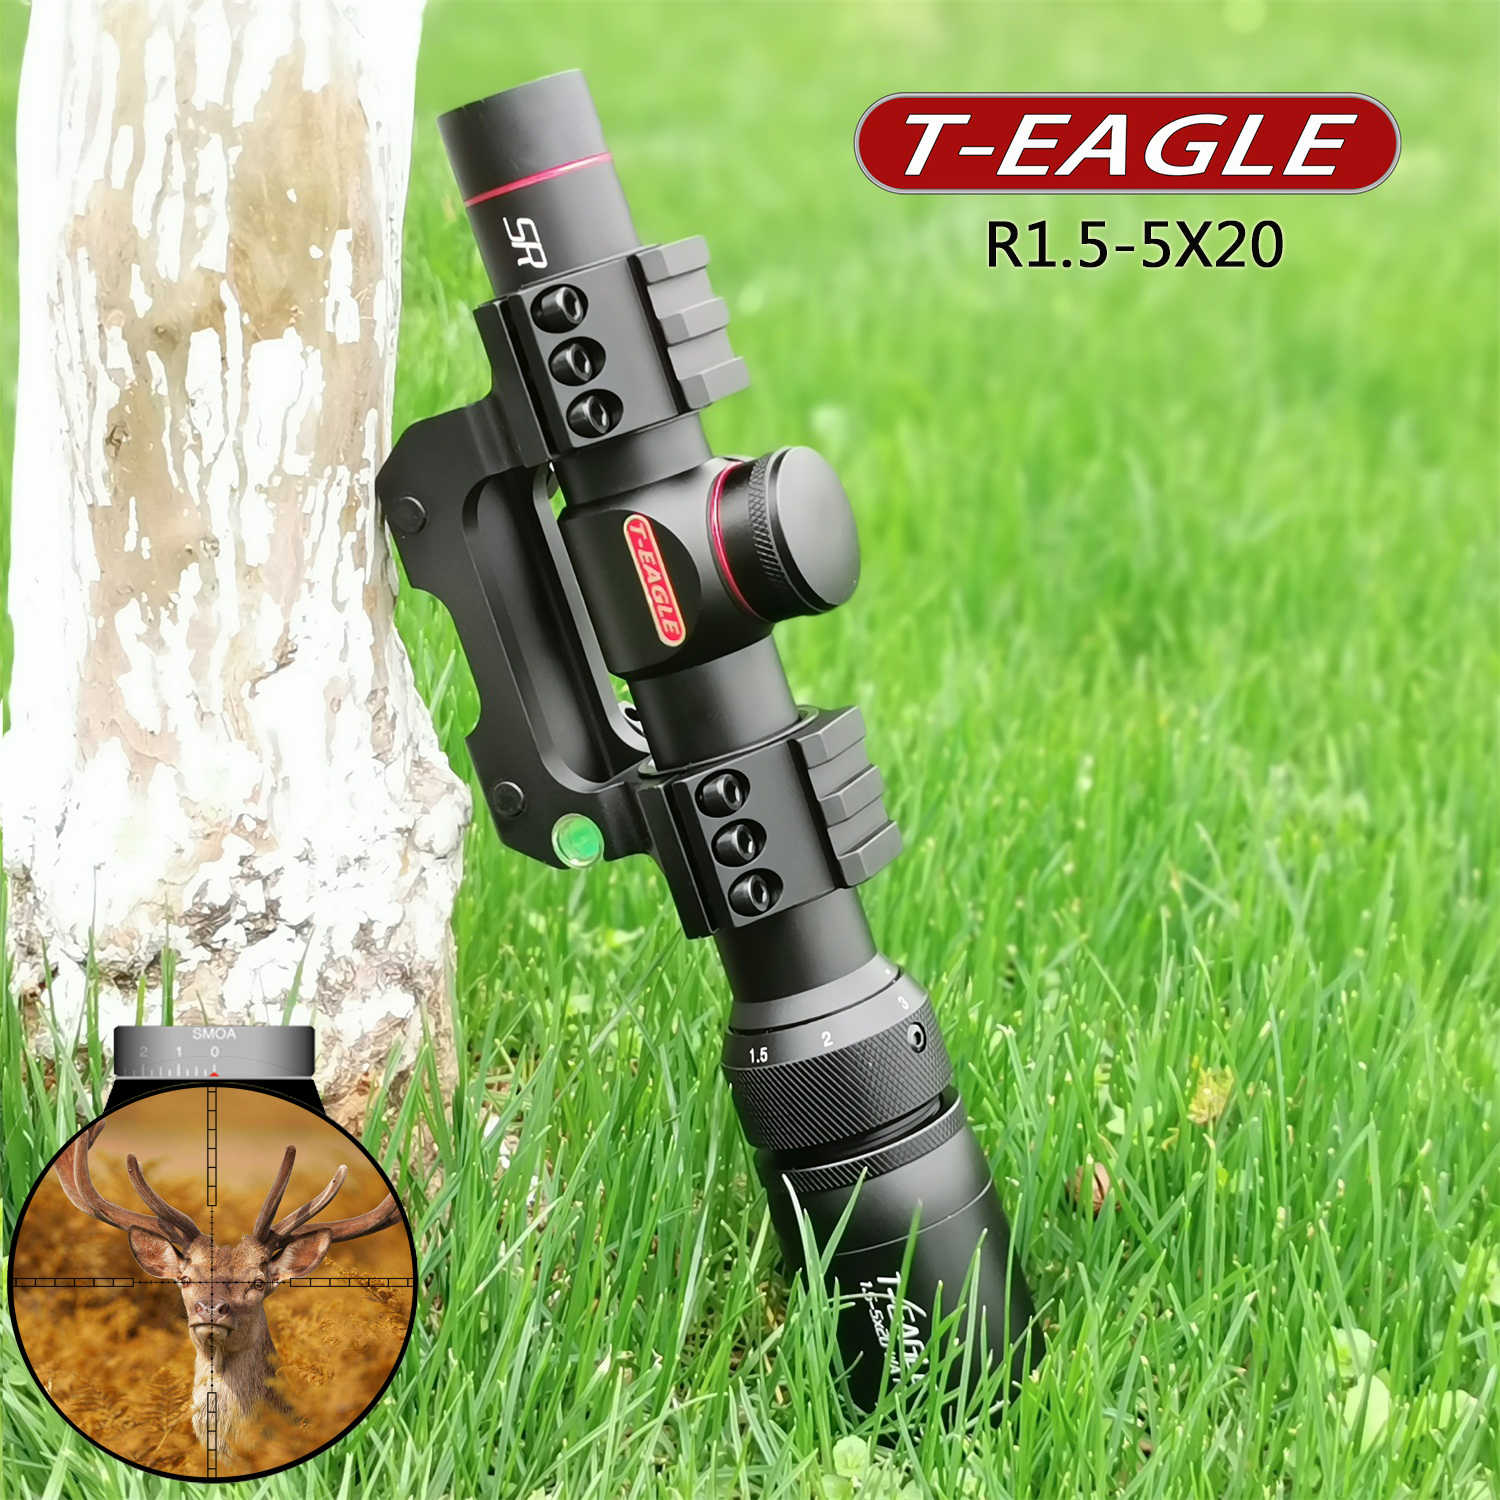 TEAGLE R1.5-5X20 ยุทธวิธีRiflesScope Sniper hunting Optics Riflescopes airsoftsports shock PROOF Big Visionปืนไรเฟิลขอบเขต